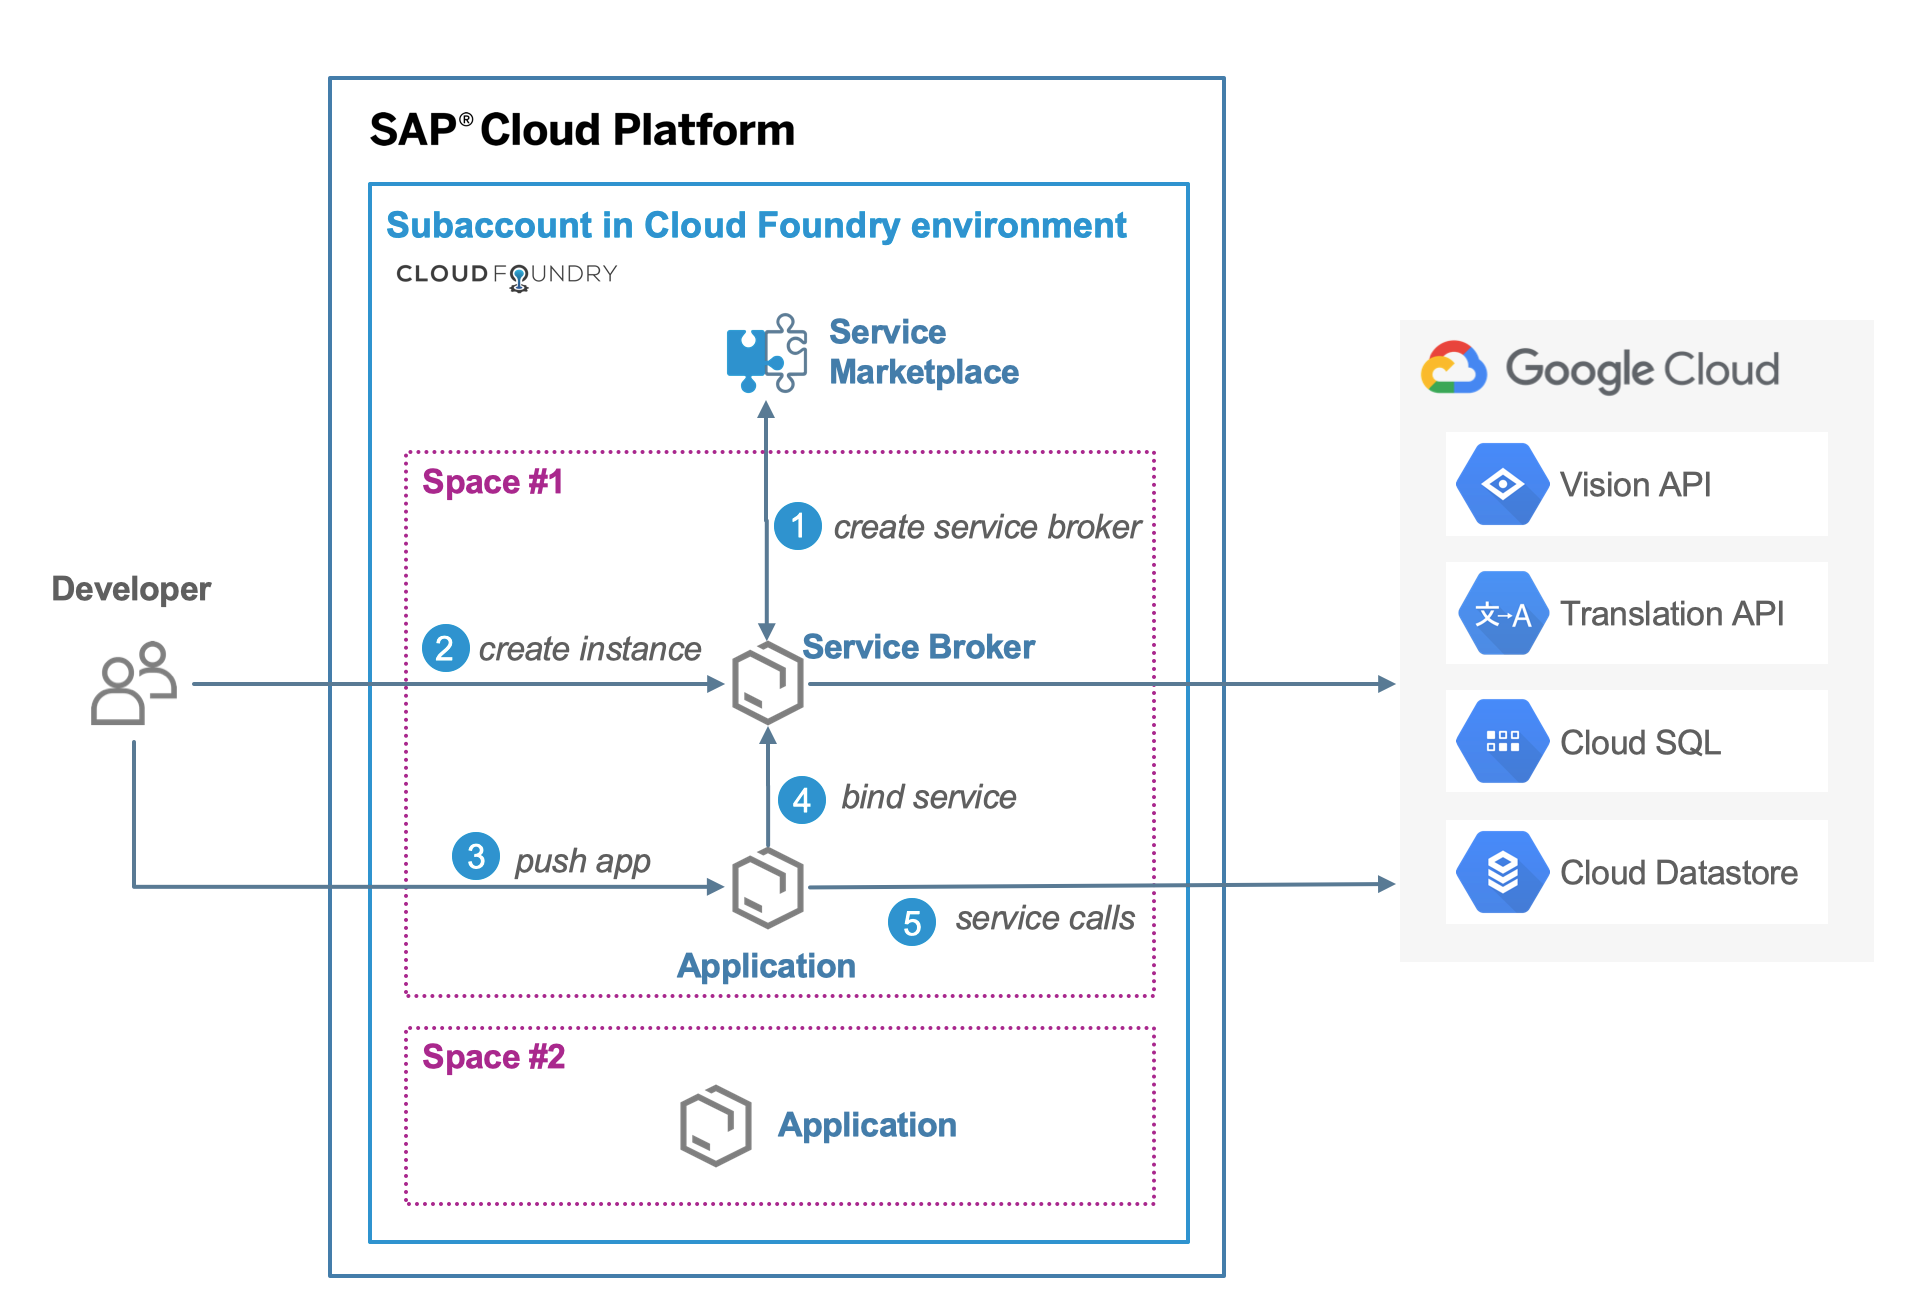 Accessing Google Cloud services from Cloud Foundry on SAP Cloud Platform